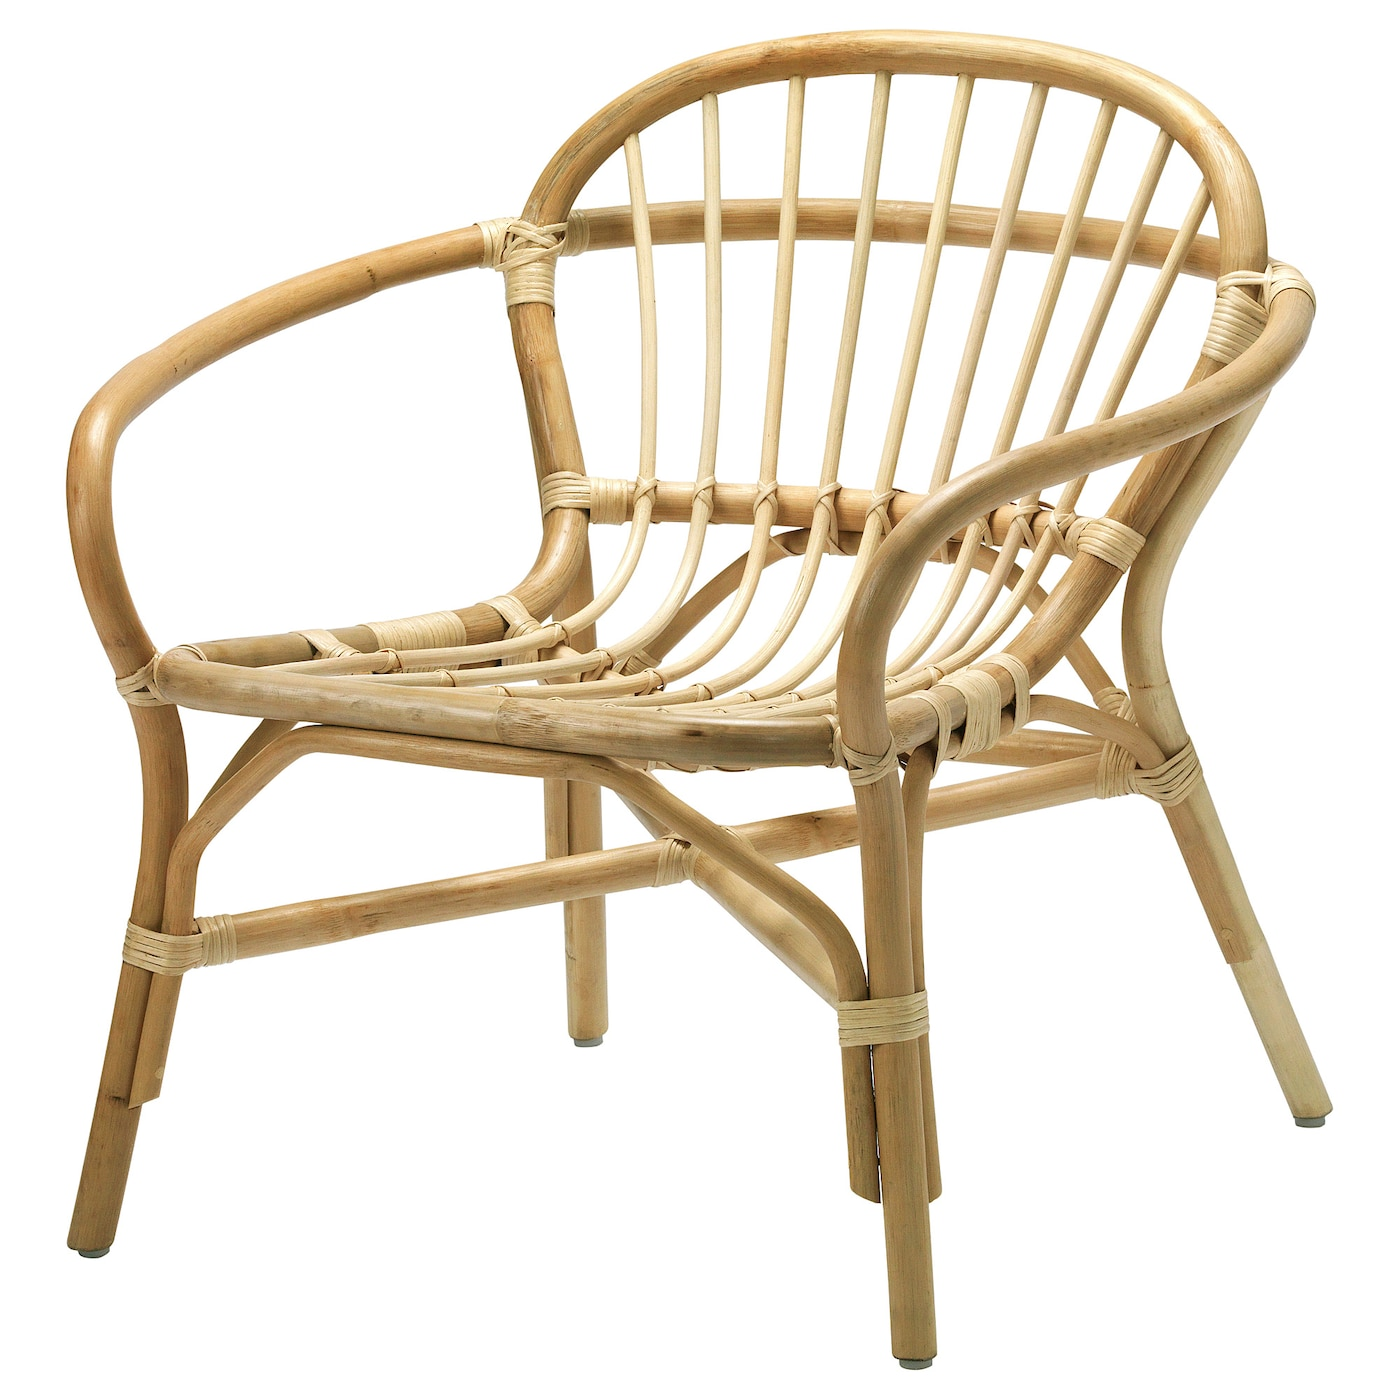 IKEA ALBACKEN armchair Handmade by a skilled craftsman.